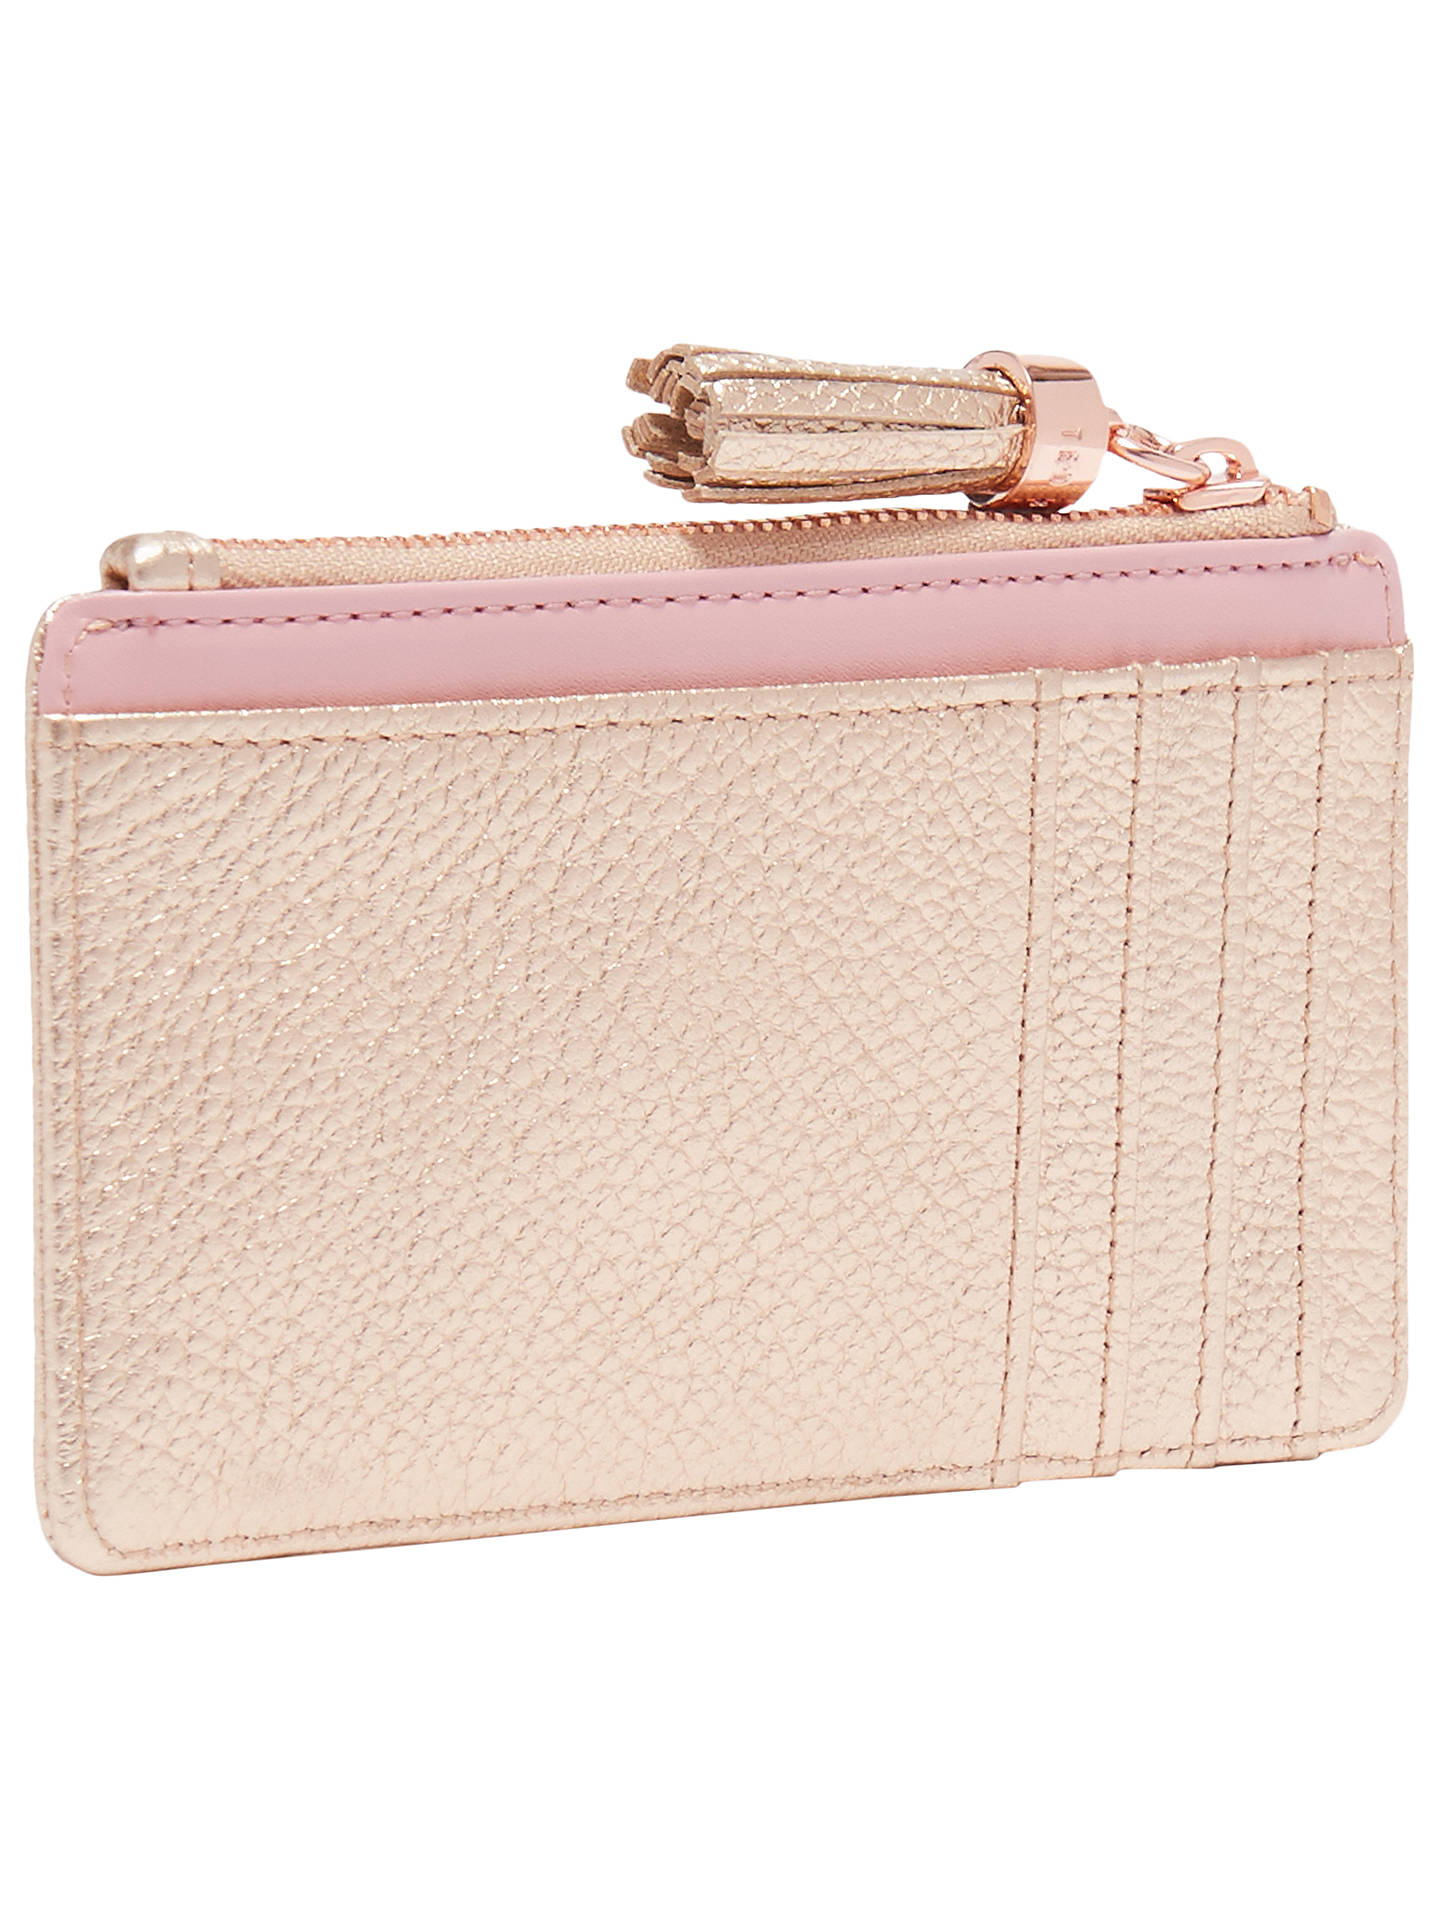 789480e1fb79a2 Ted Baker Sydnee Leather Zipped Card Holder at John Lewis   Partners